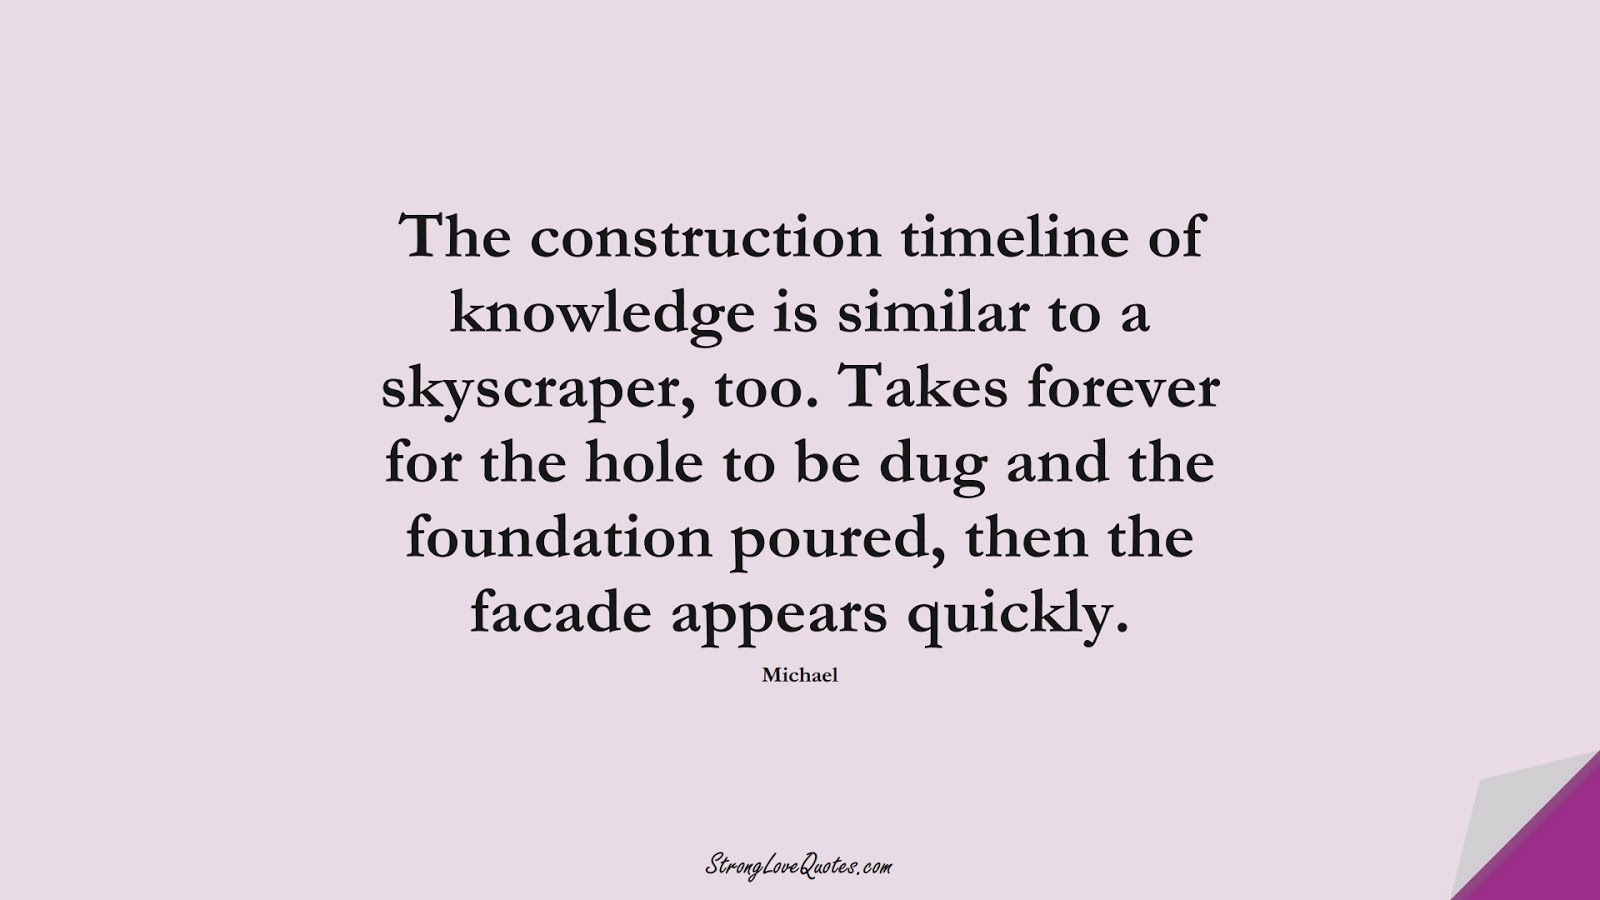 The construction timeline of knowledge is similar to a skyscraper, too. Takes forever for the hole to be dug and the foundation poured, then the facade appears quickly. (Michael);  #KnowledgeQuotes